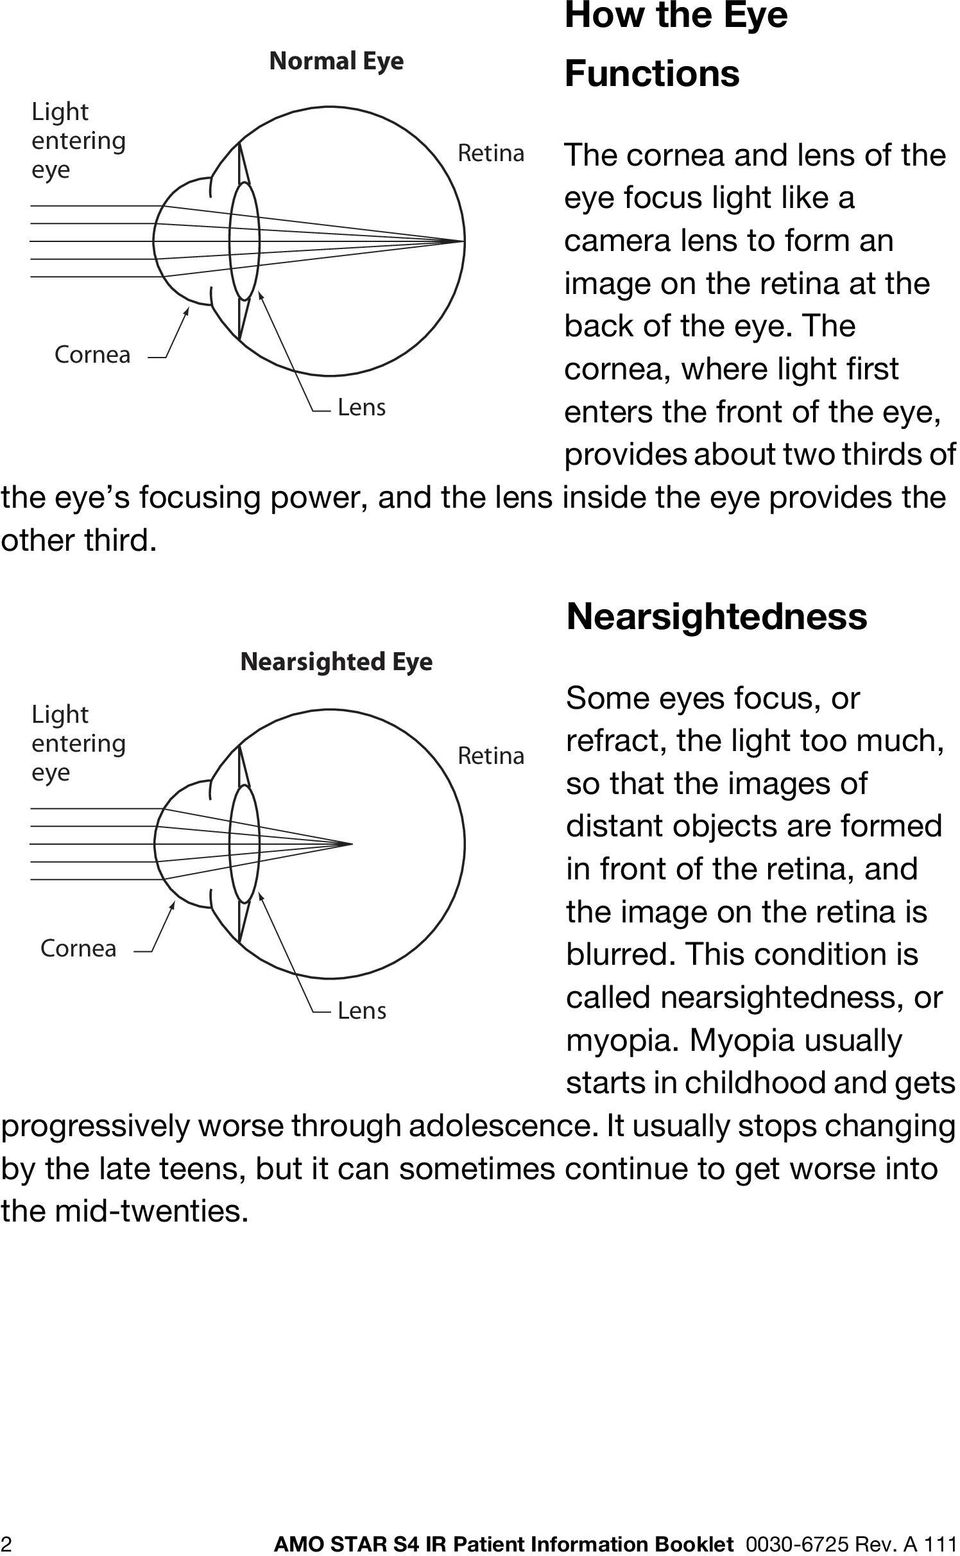 Light entering eye Cornea Normal Eye Lens Nearsighted Eye Lens Retina Retina Nearsightedness Some eyes focus, or refract, the light too much, so that the images of distant objects are formed in front